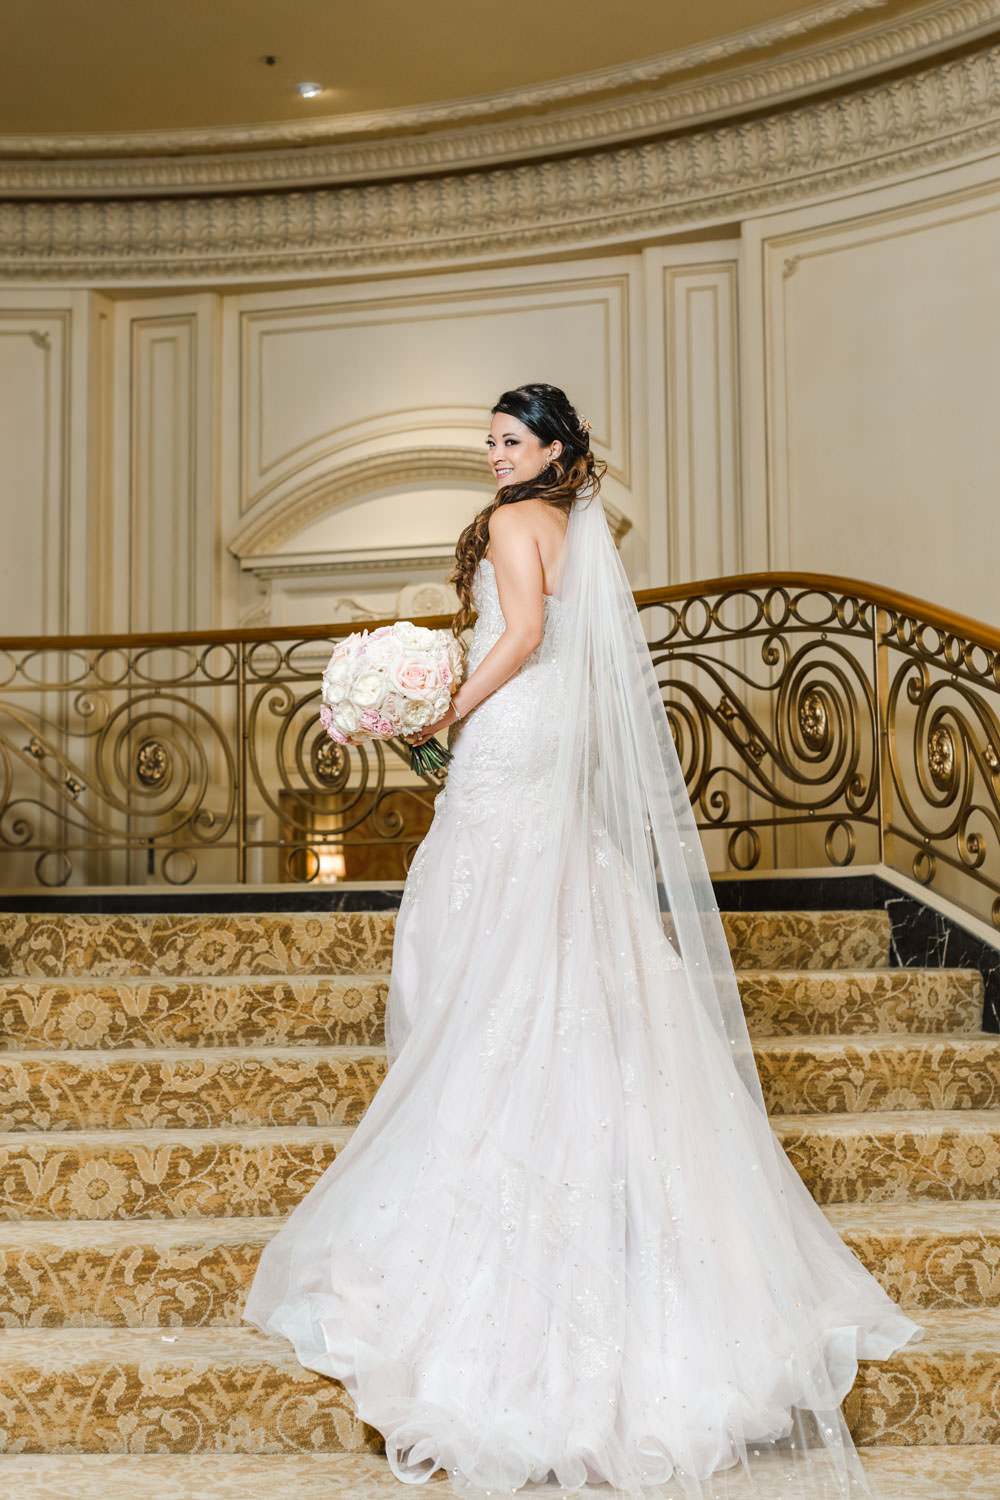 Bridal portrait on staircase at Elegant Westgate Hotel Wedding in Downtown San Diego, Cavin Elizabeth Photography